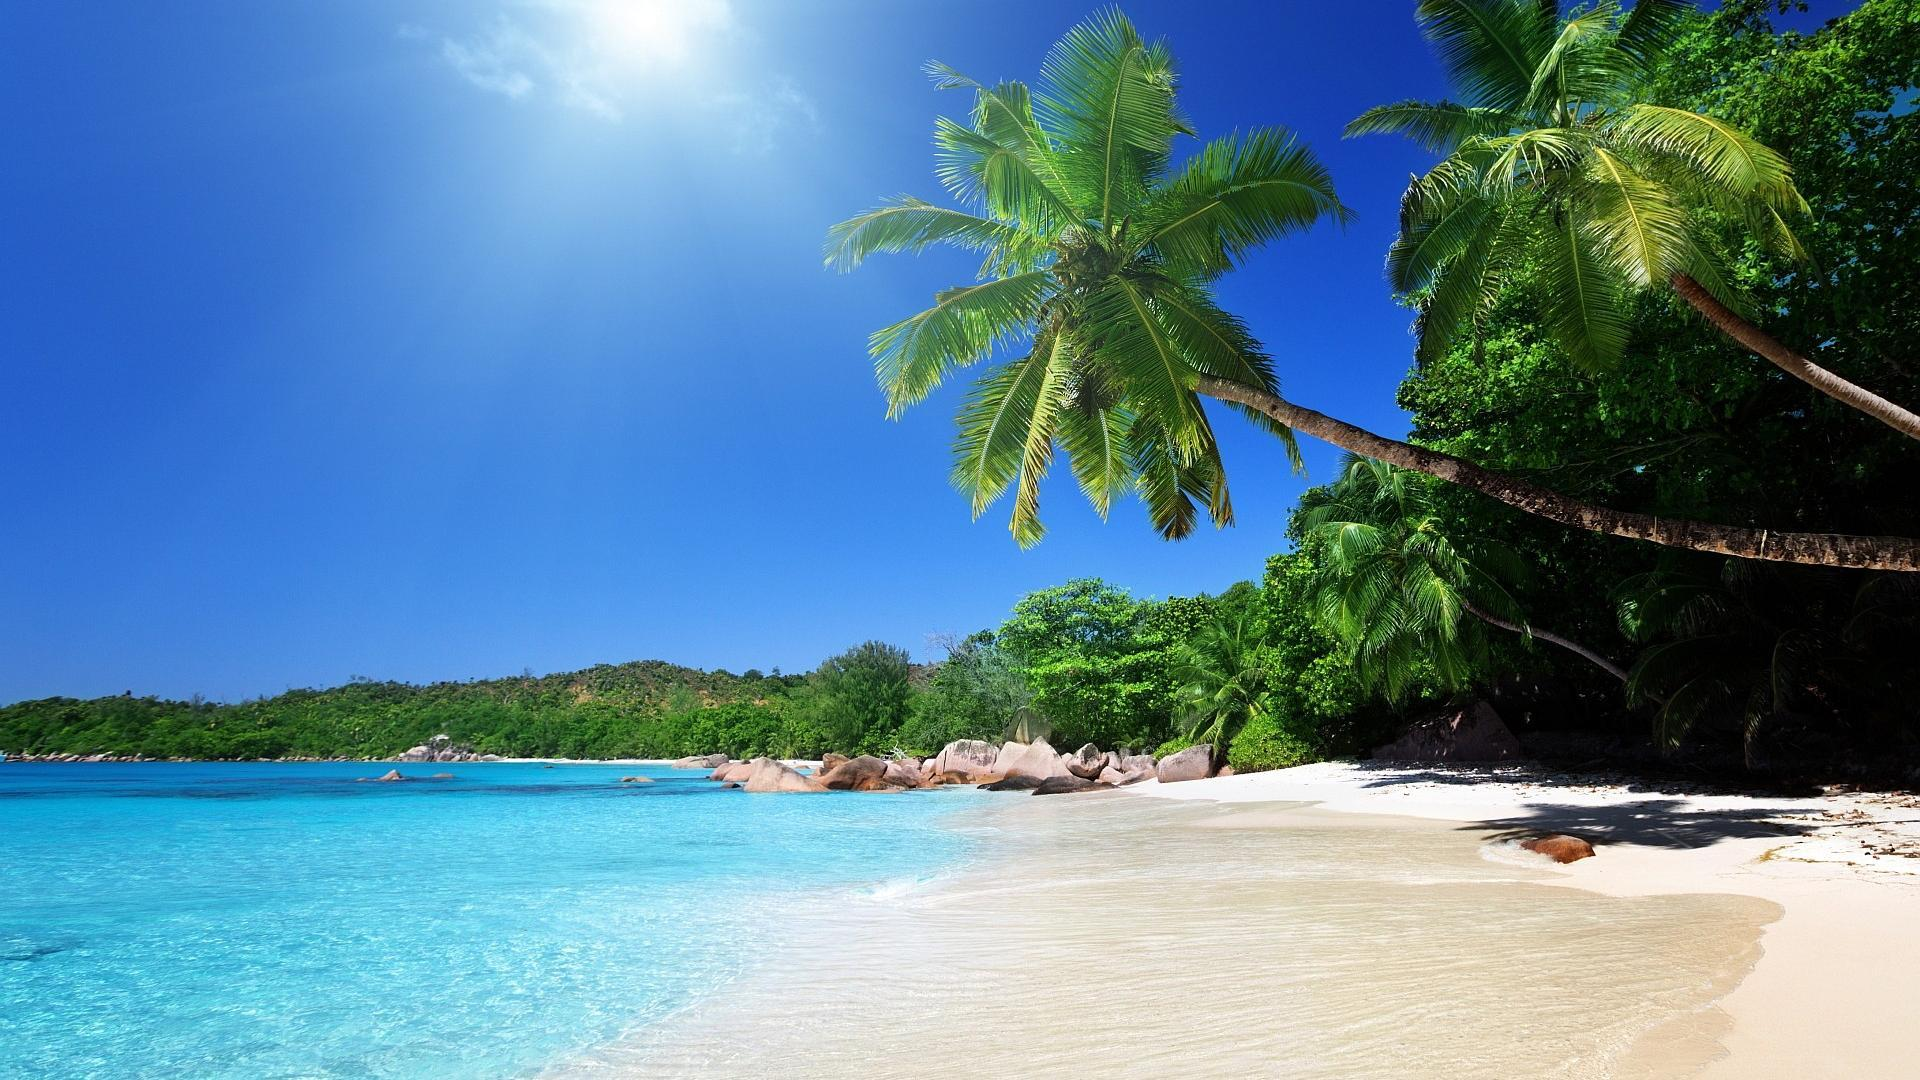 Tropical Scenes Wallpapers   Top Free Tropical Scenes Backgrounds ...